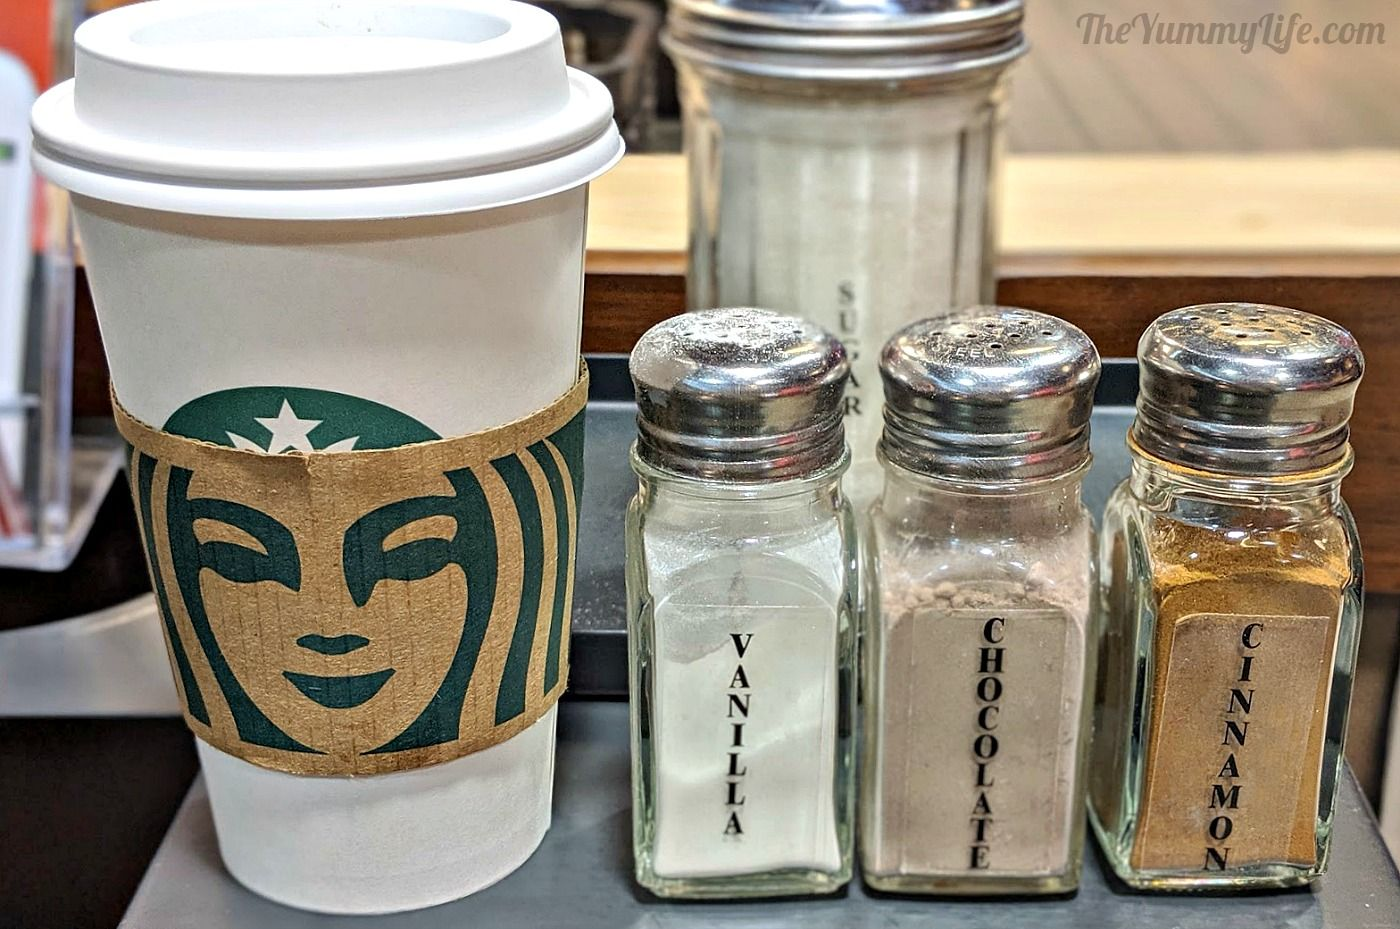 Starbucks_condiments.jpg